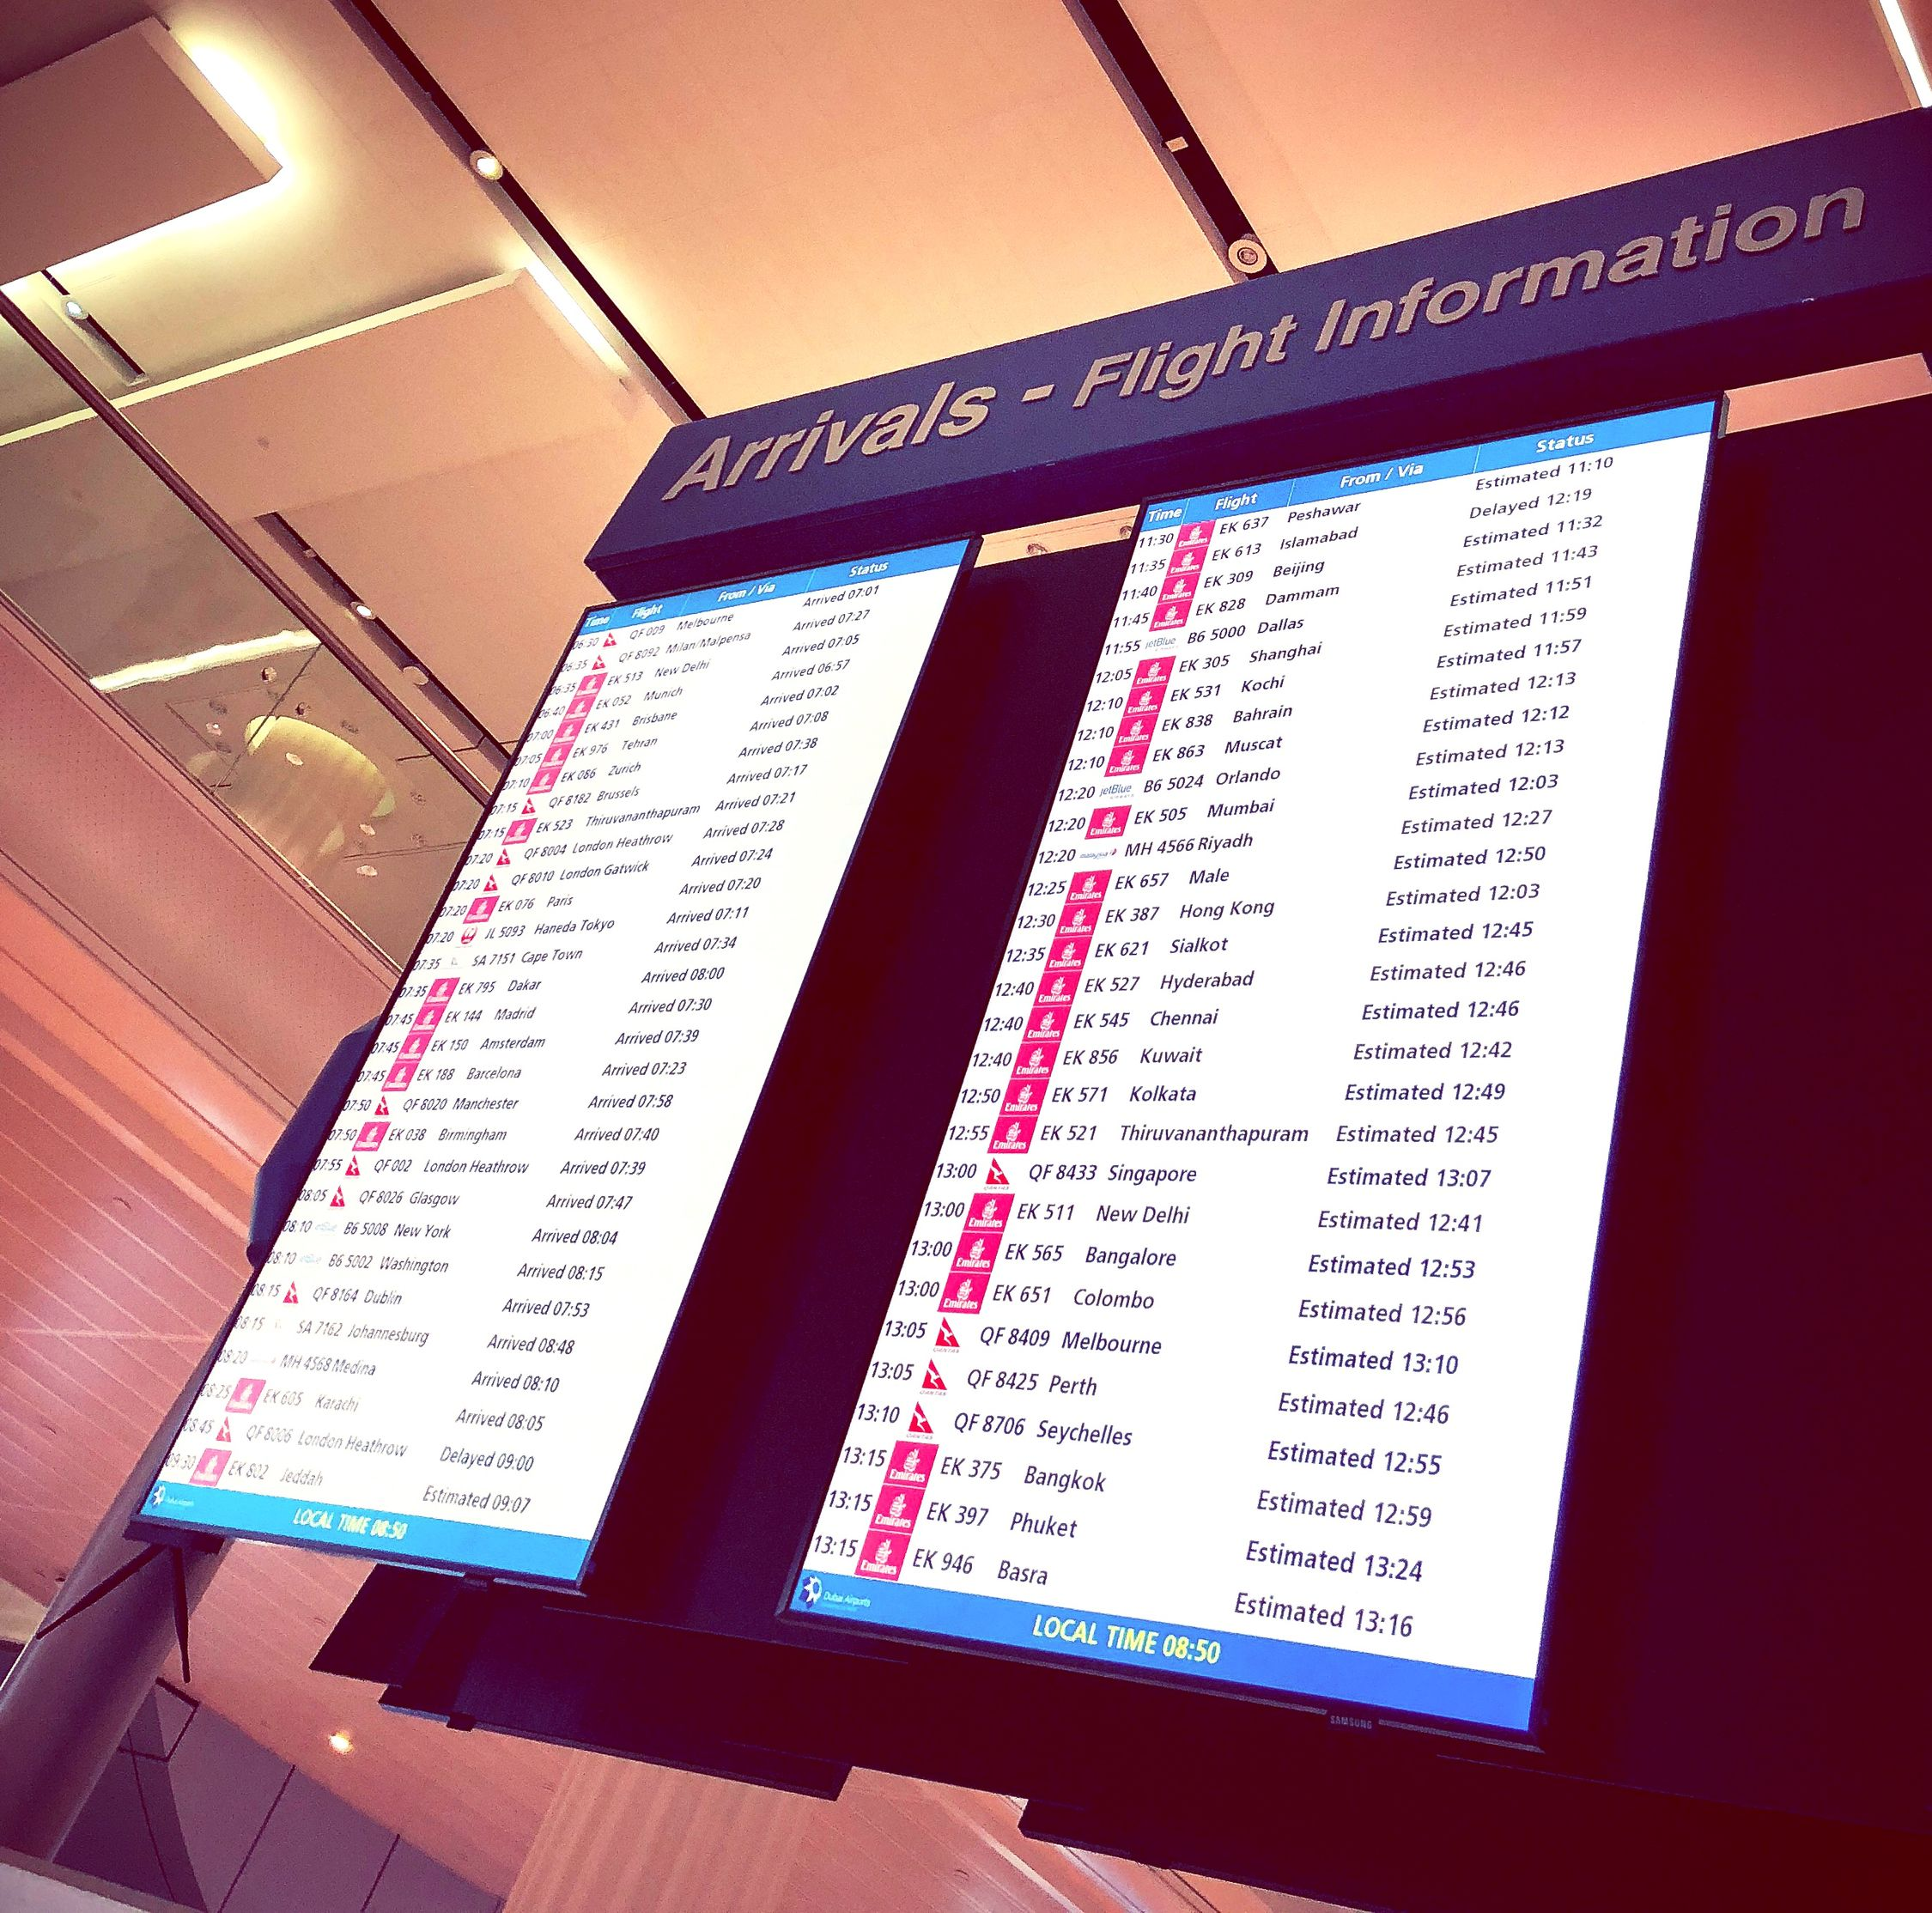 Arrivel Airport Communication Indoors  Text Low Angle View No People Day Close-up